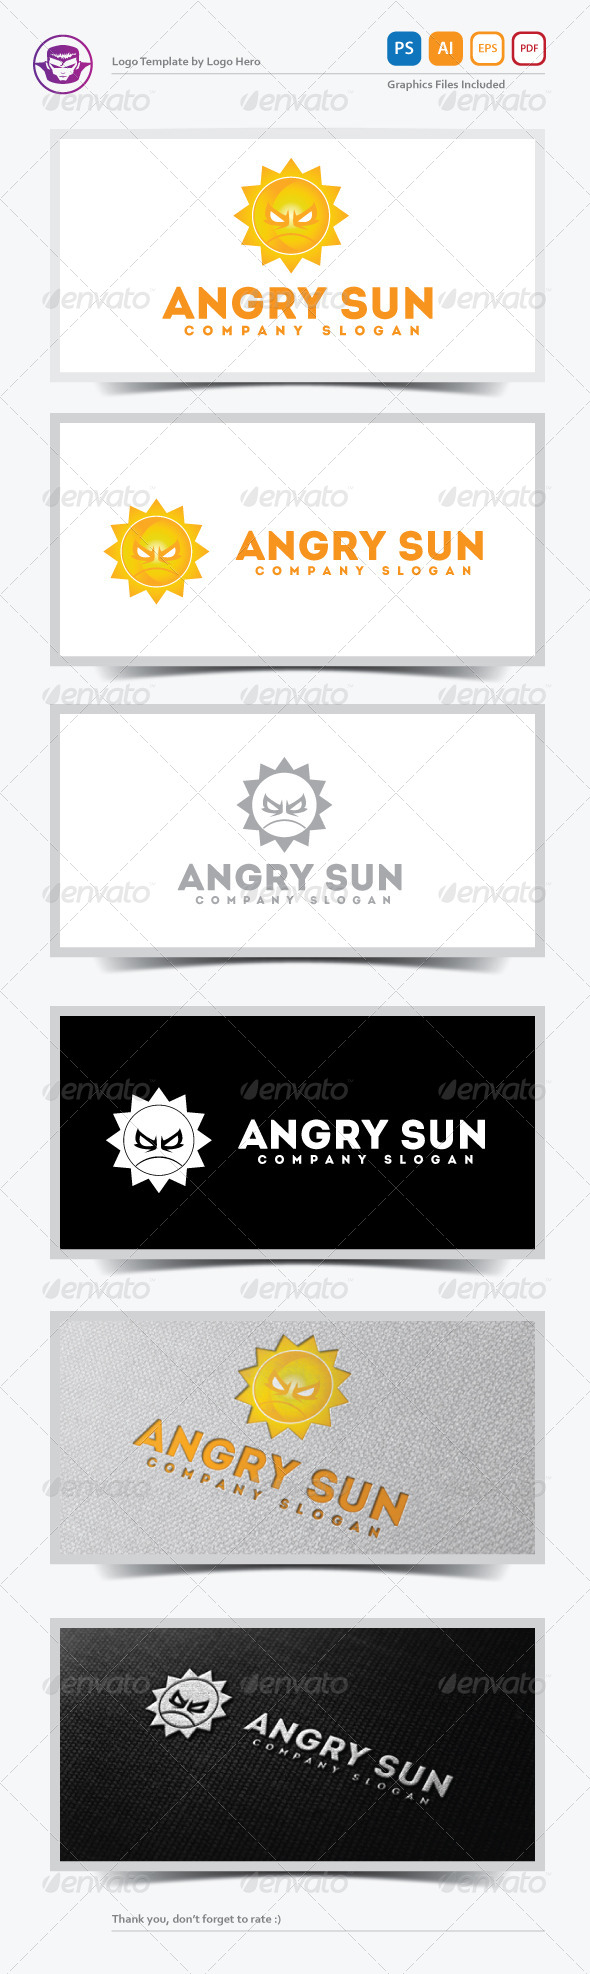 GraphicRiver Angry Sun Logo Template 5326108